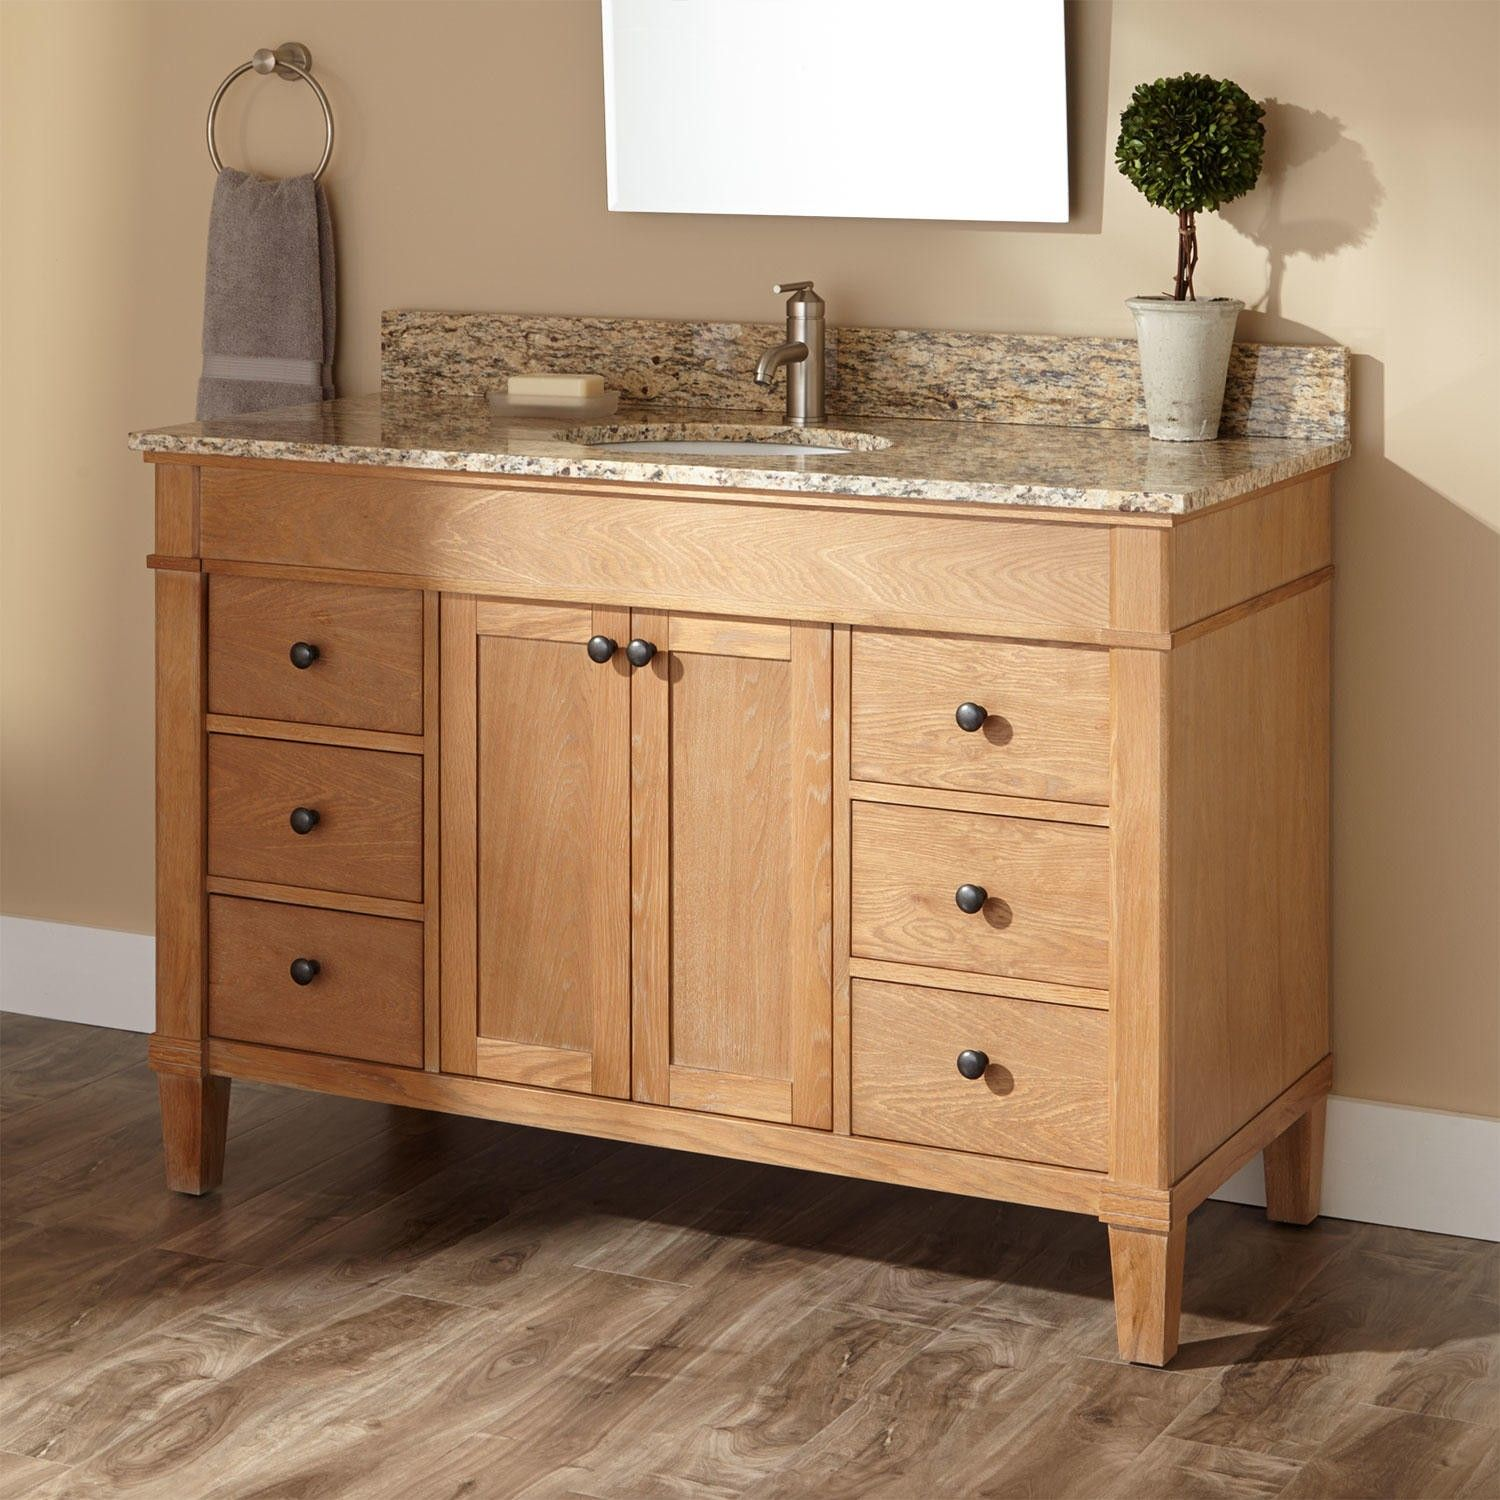 Custom White Oak Furniture Vanity By S.D.G. Cabinetry